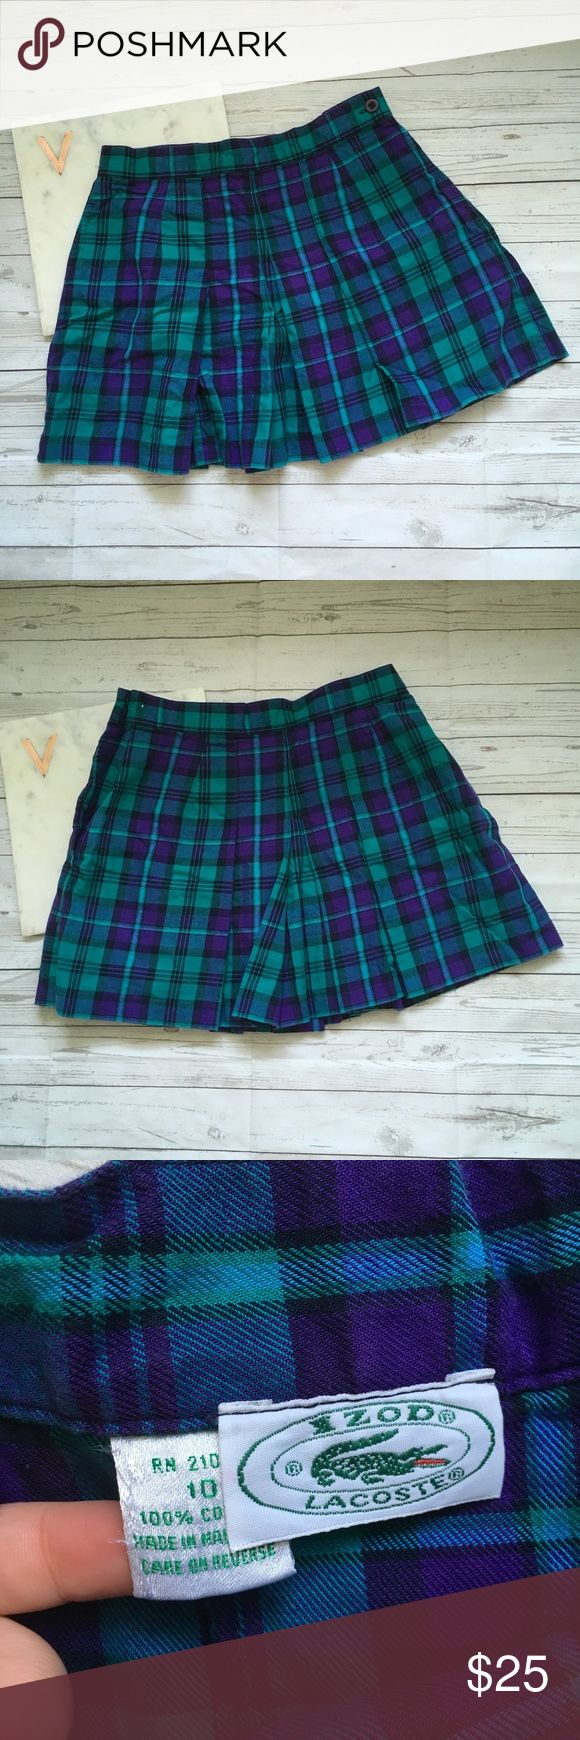 izod lacoste womens 10 plaid skirt pleated checker gently used with no flaws  great for school   could be a schoolgirl halloween costume   waist = 13 inches  length = 14.5 inches Izod Skirts Mini